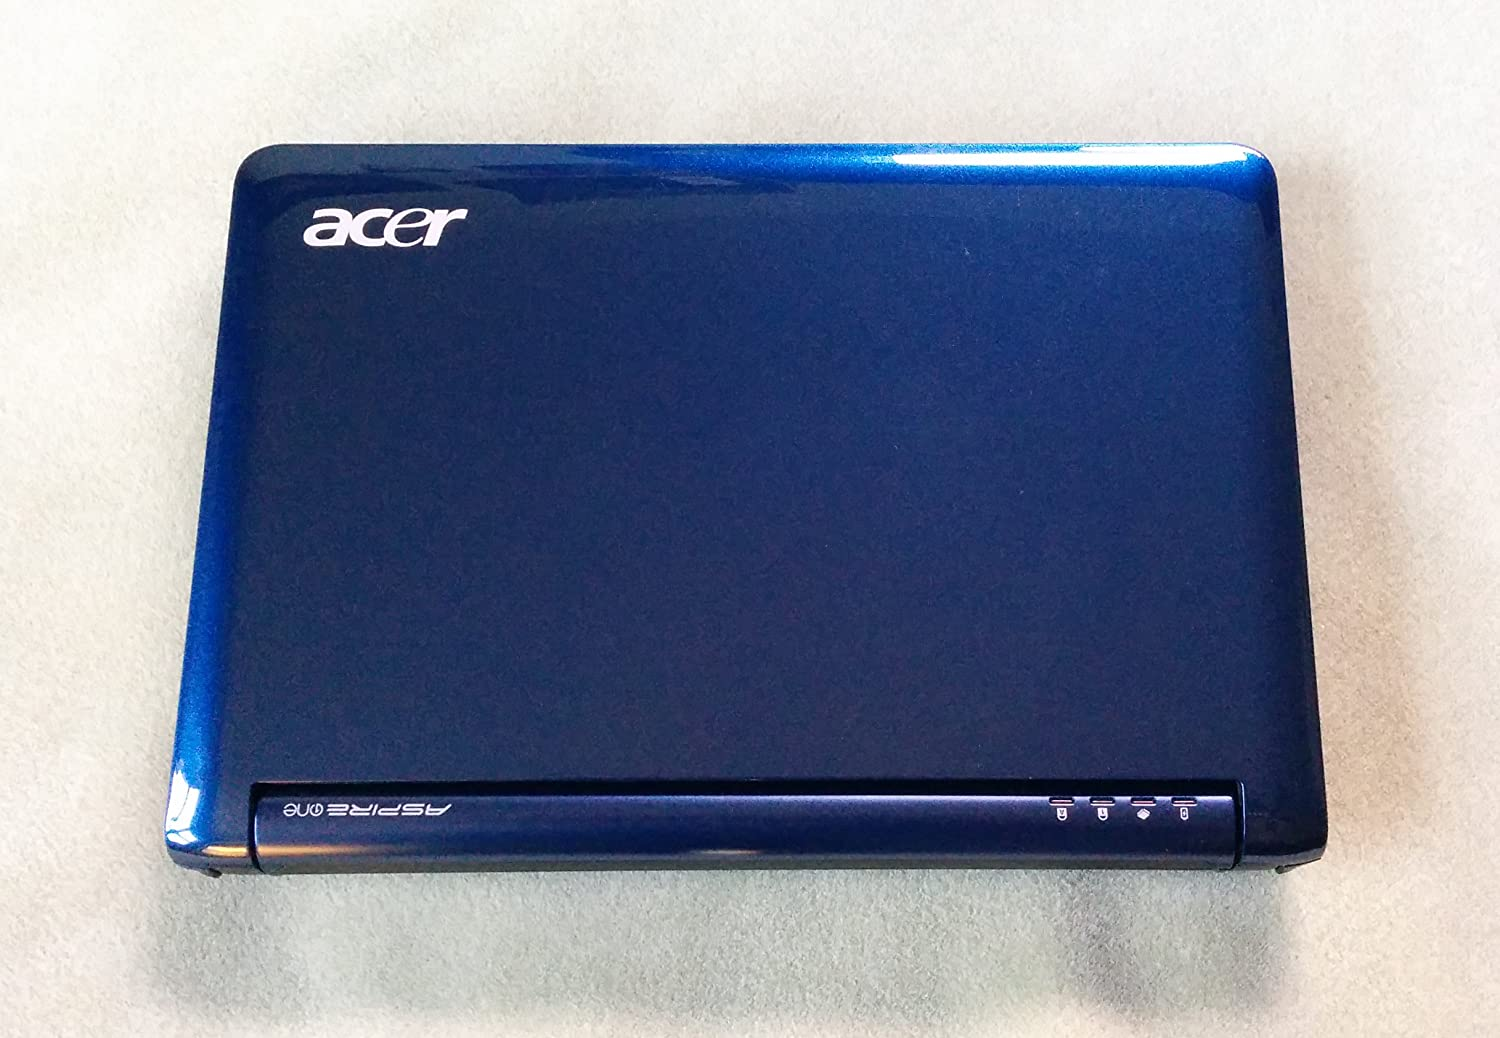 Amazon.com: Acer ZG5 Aspire One (8.9